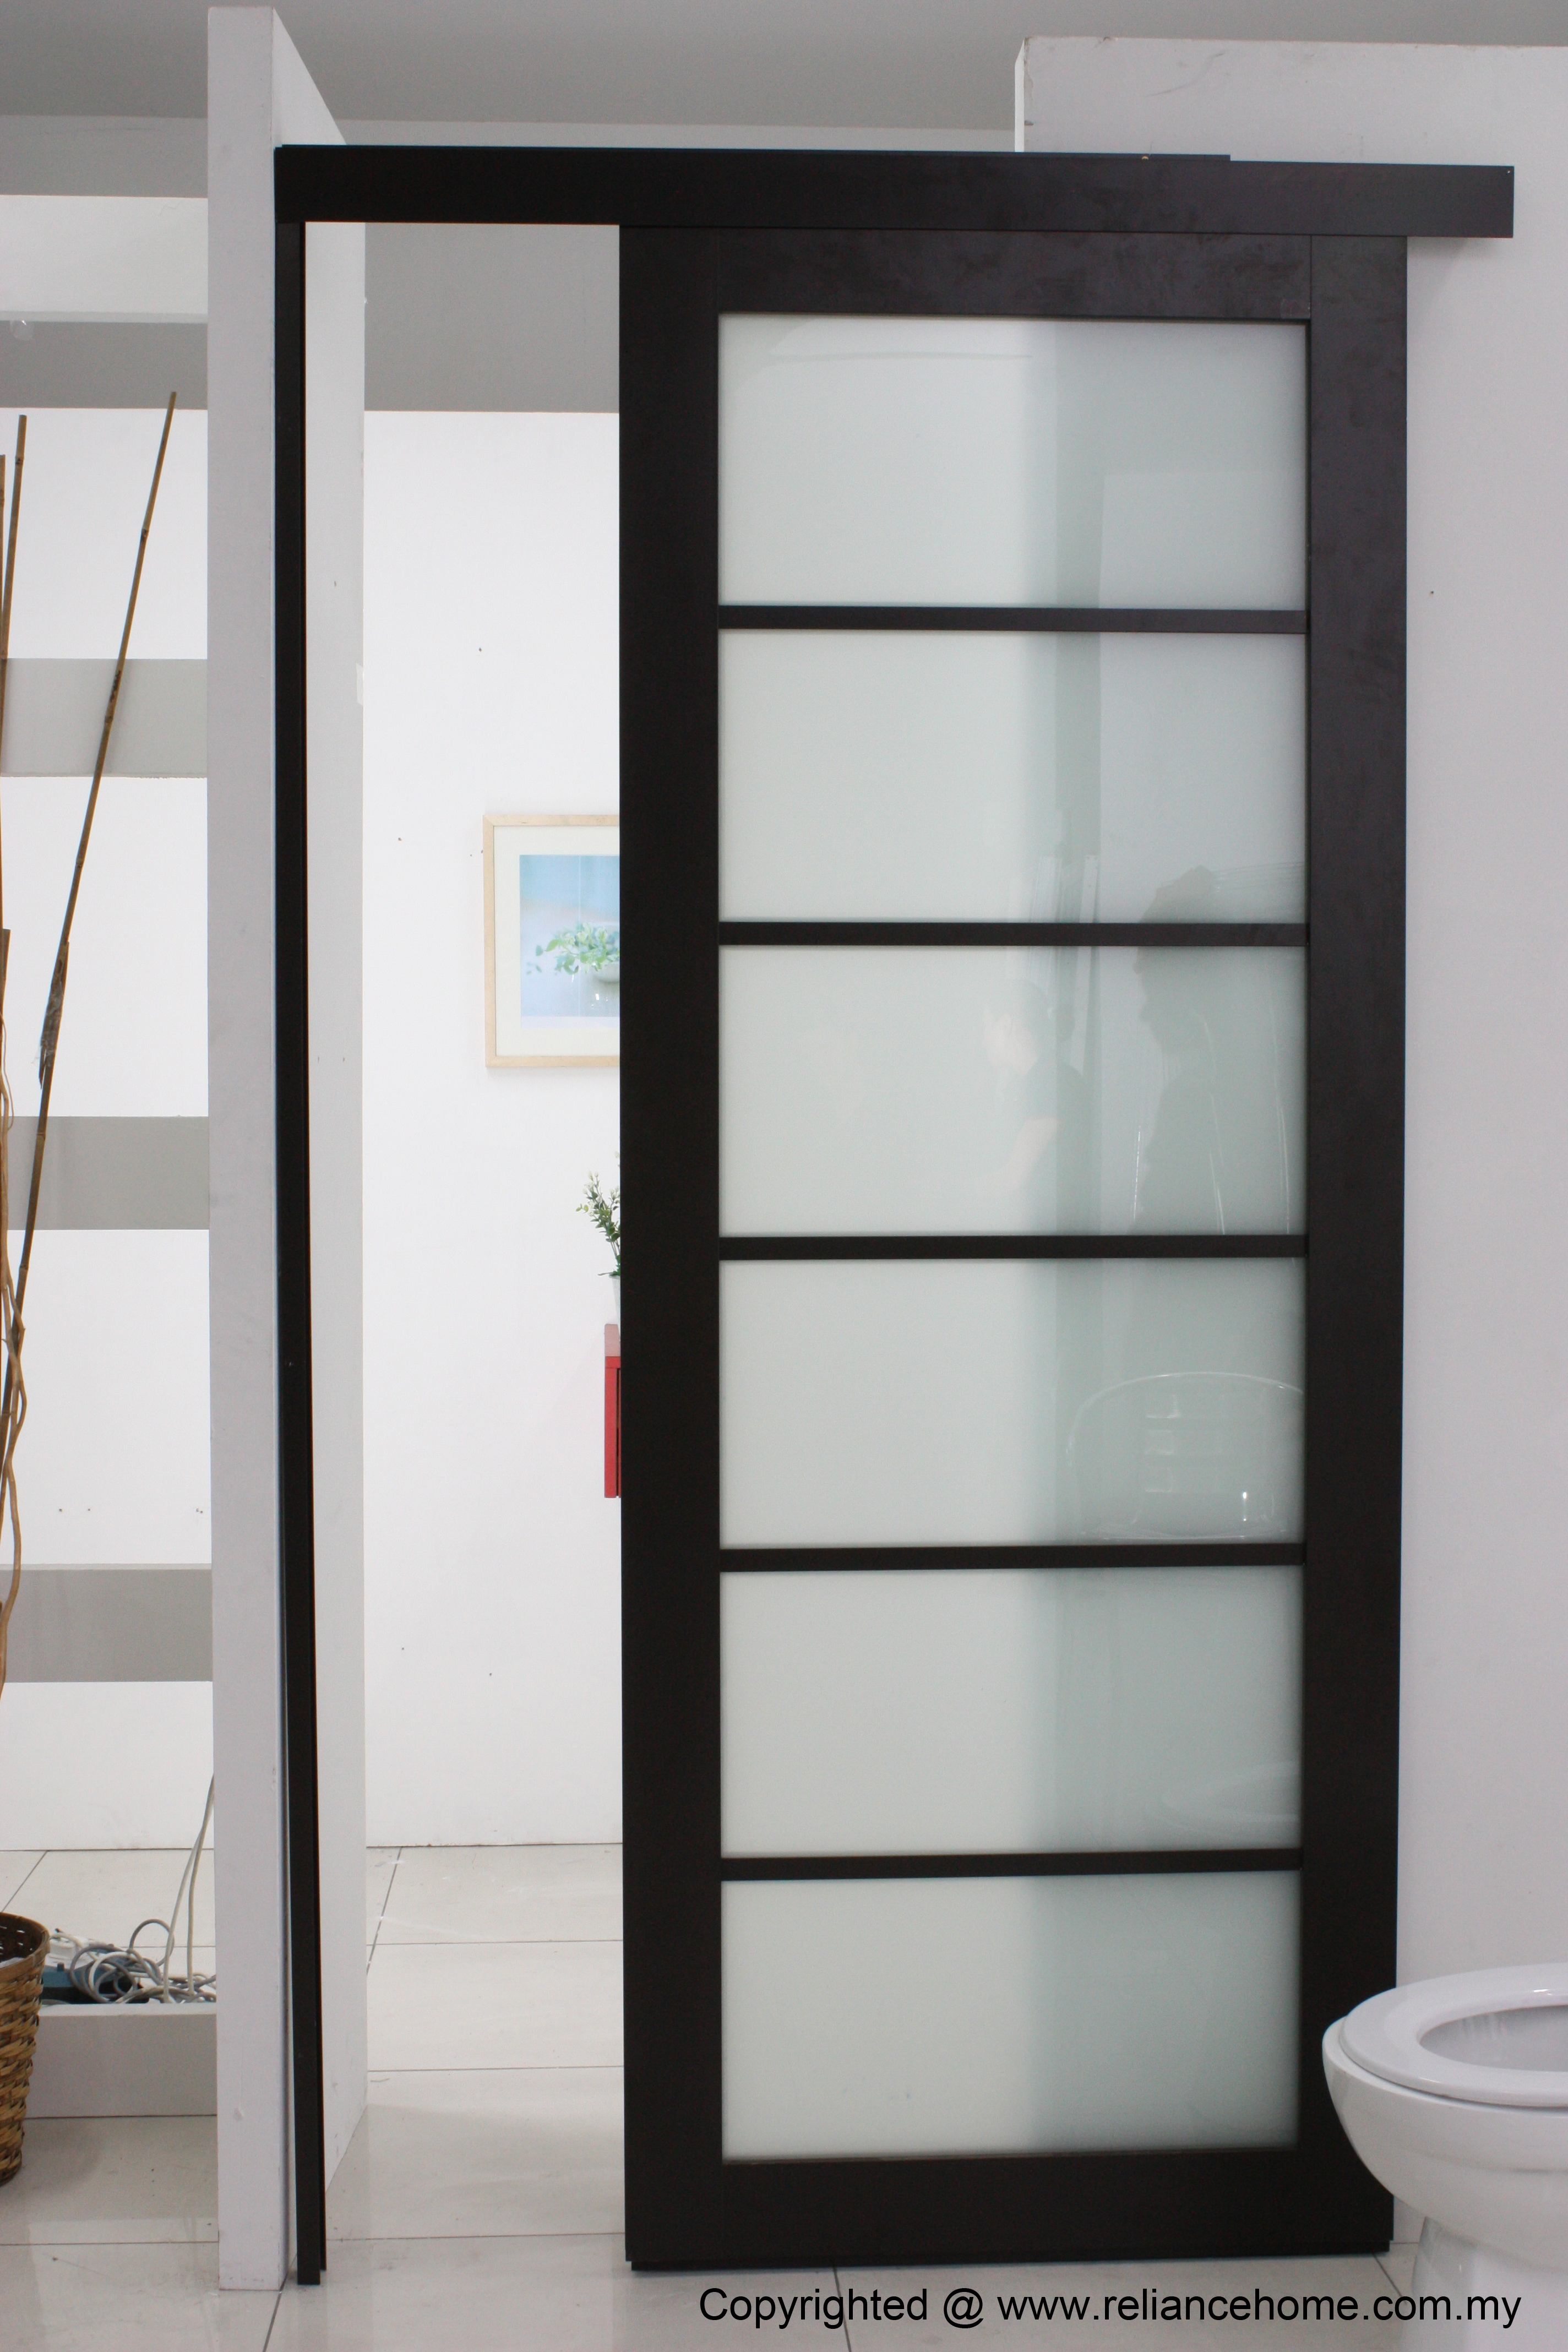 Permalink to Sliding Doors For The Bathroom